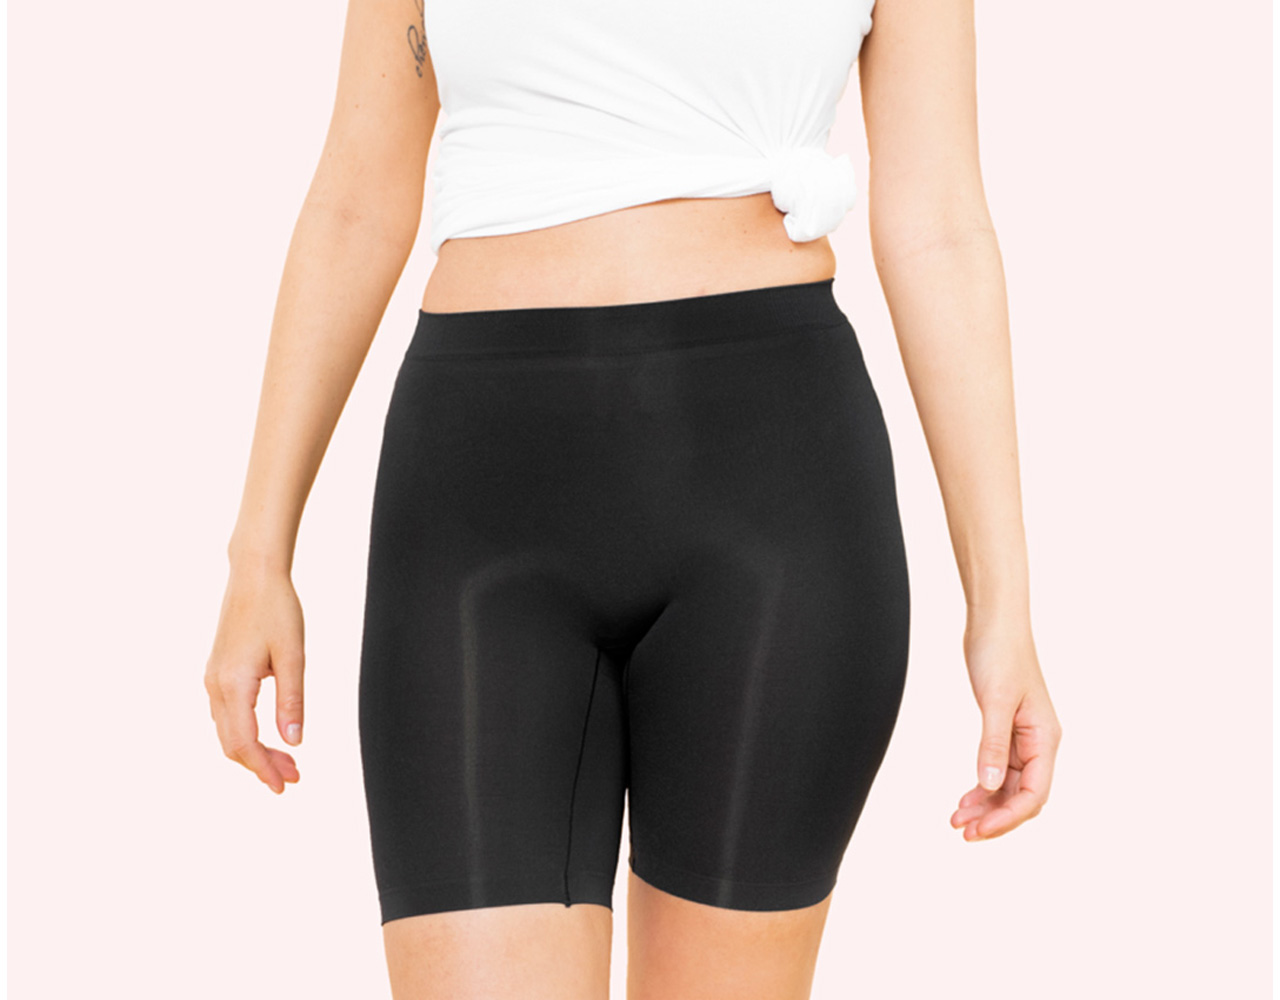 best anti chafing shorts: thigh society